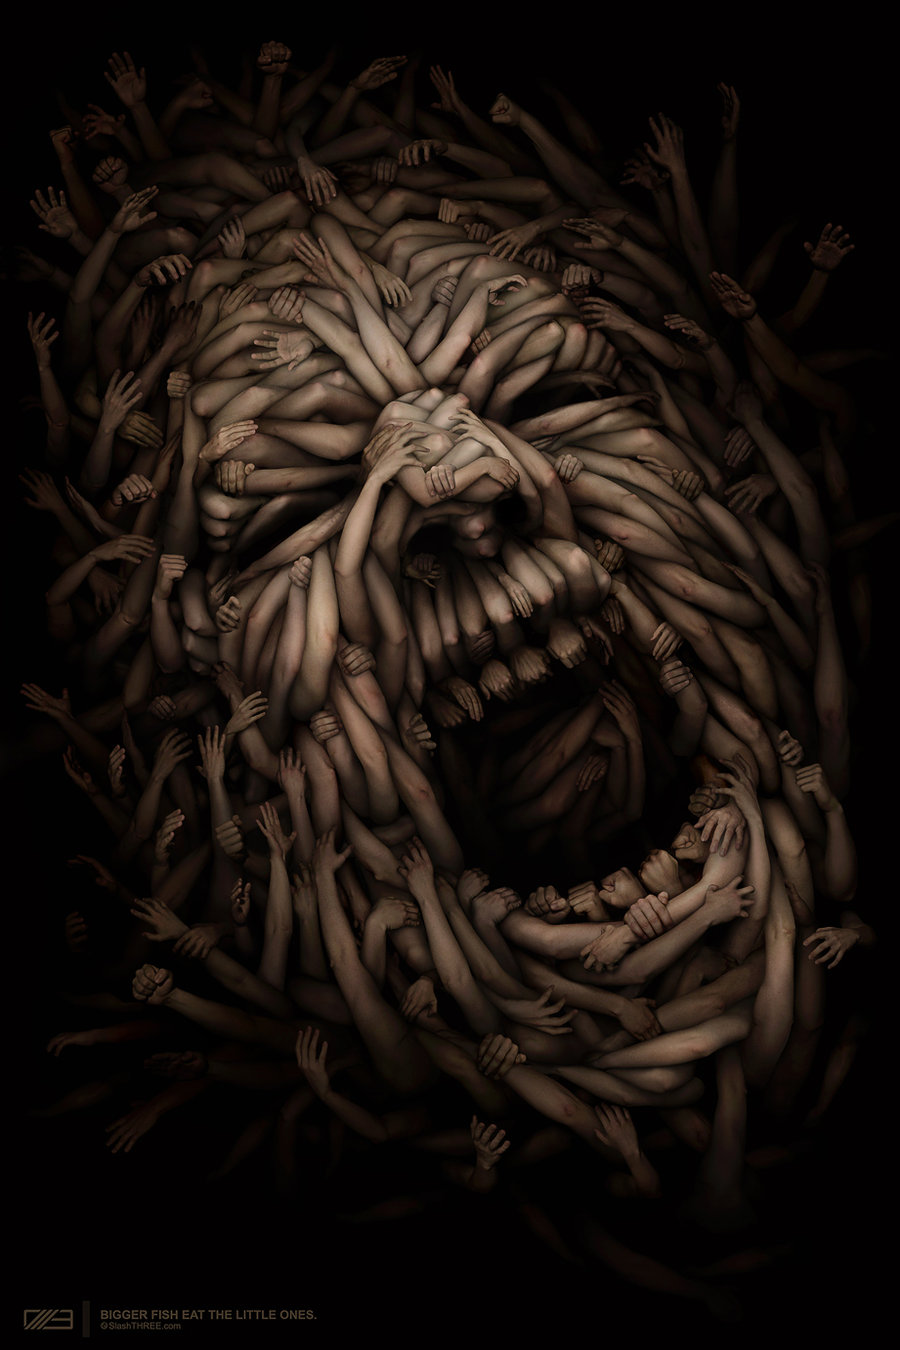 """SOCIETY"" by Anton Semenov"